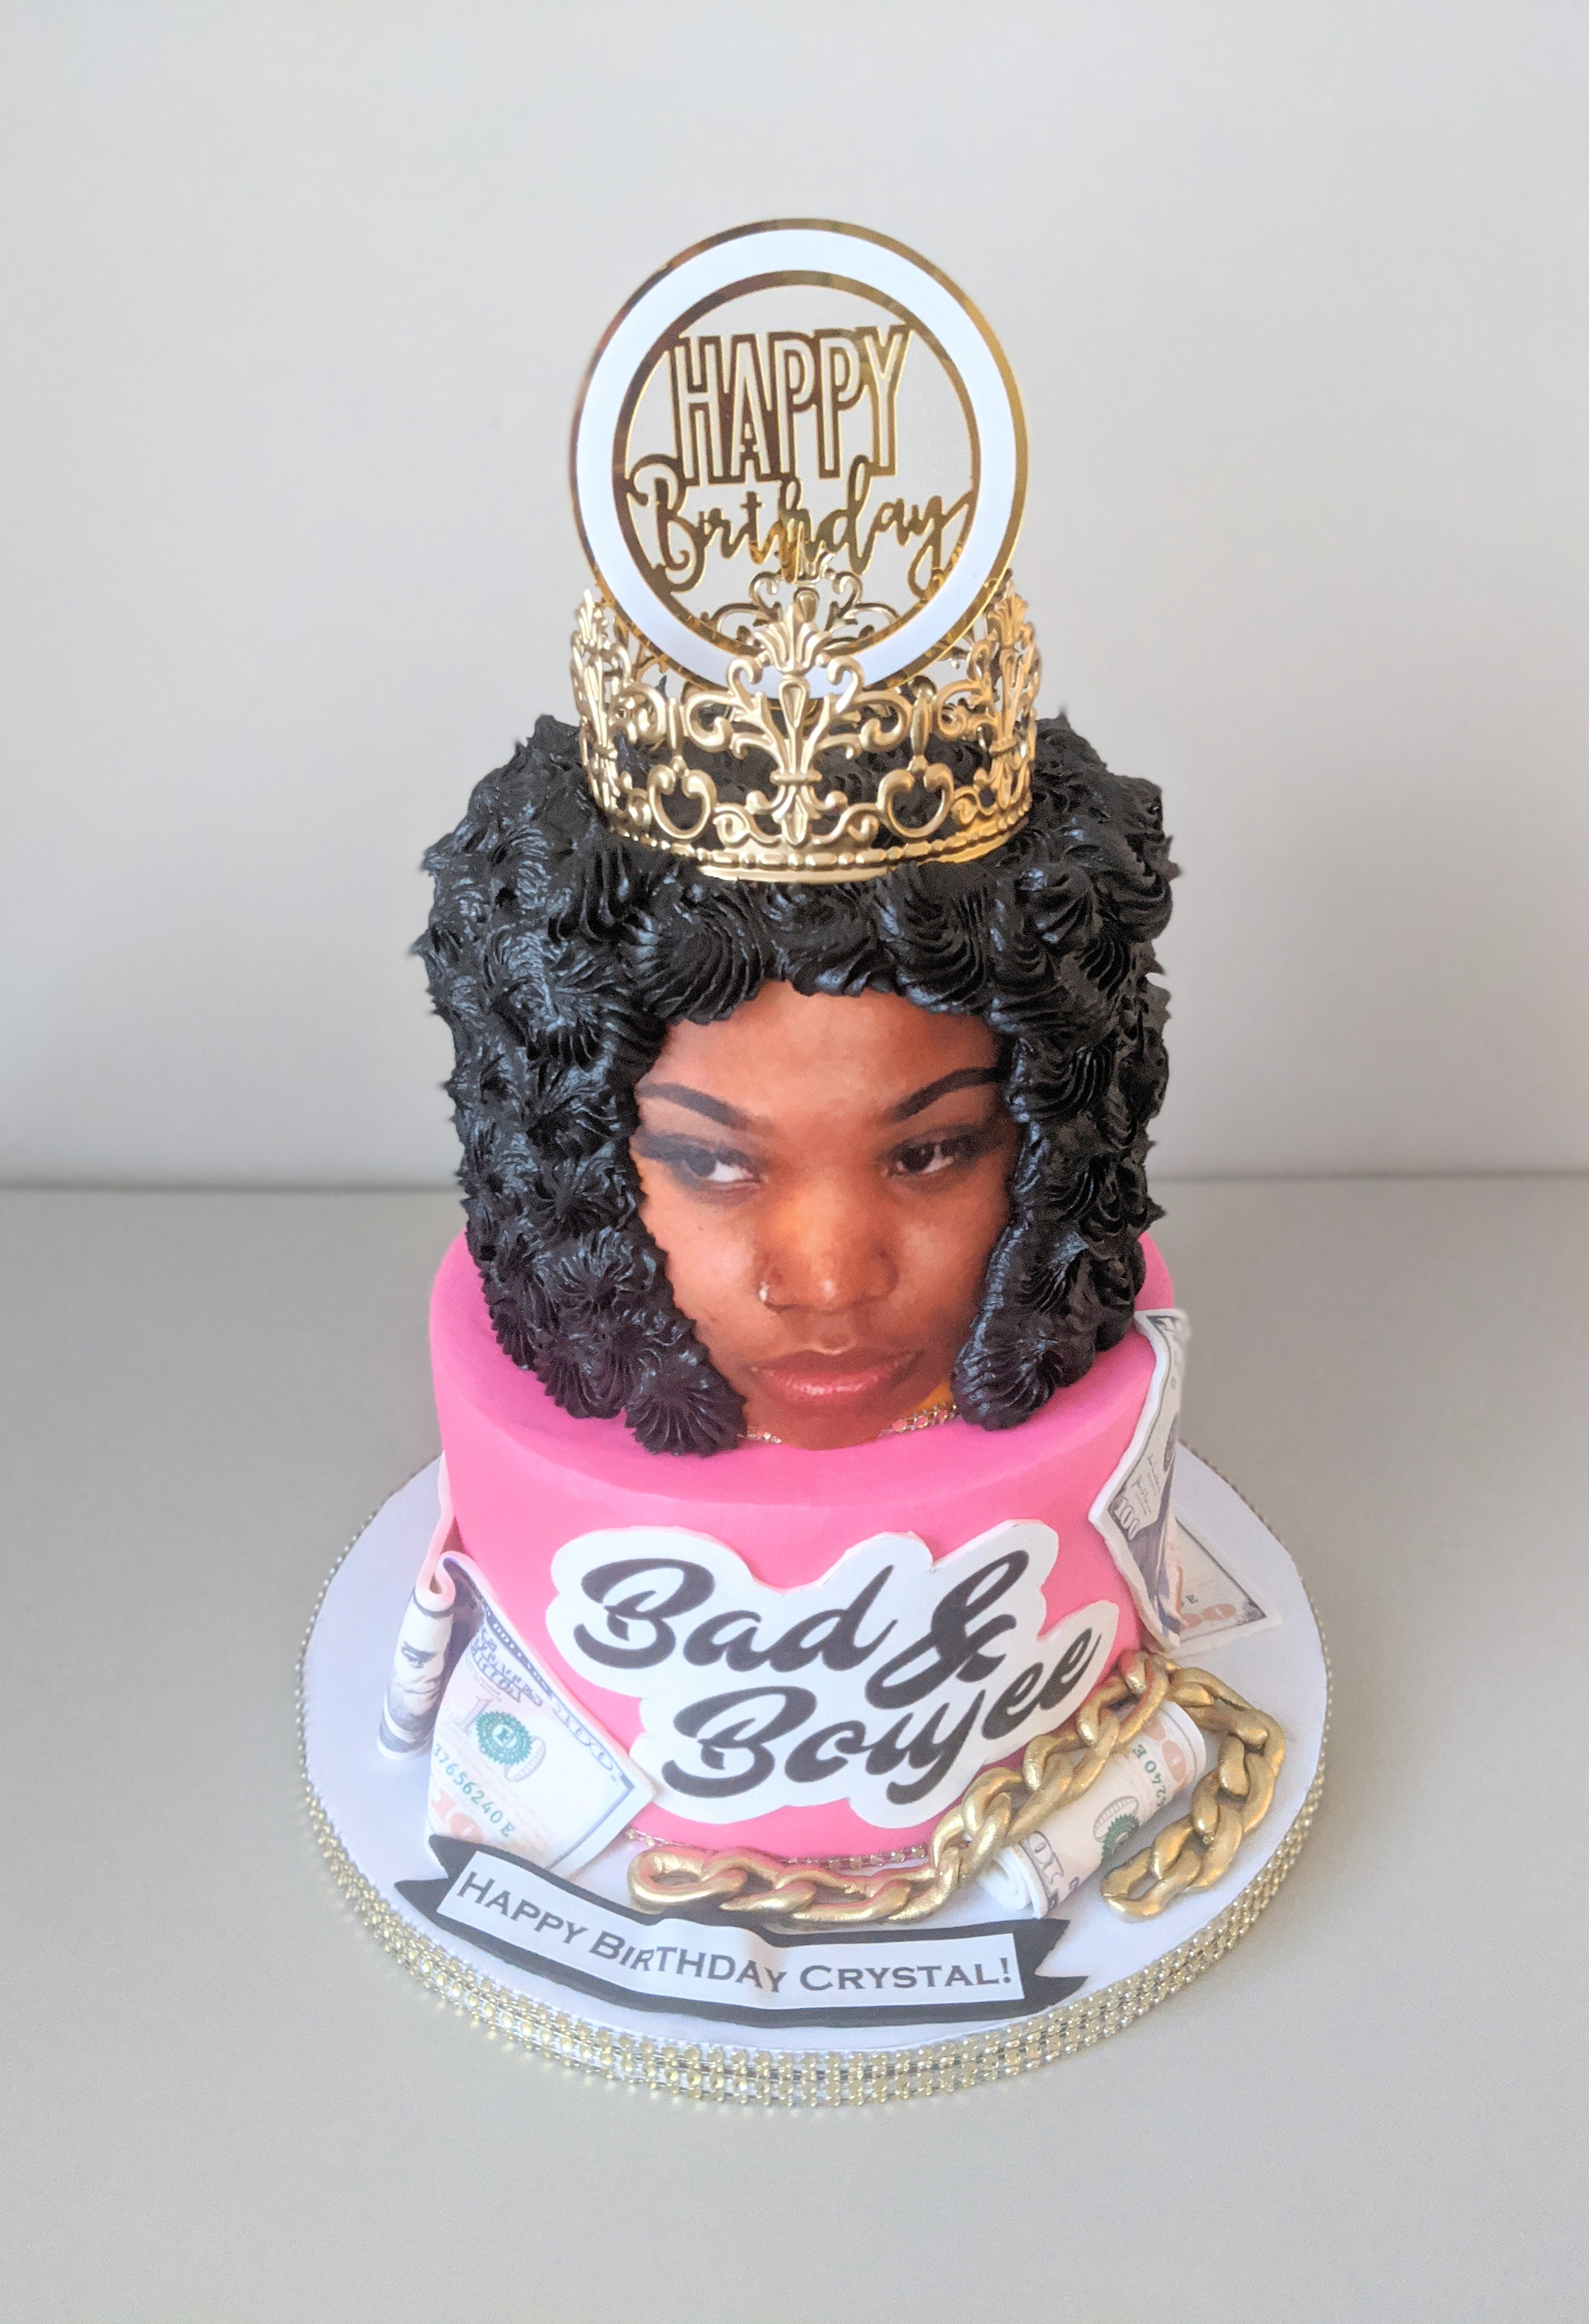 Bad and Boujee Birthday Cake